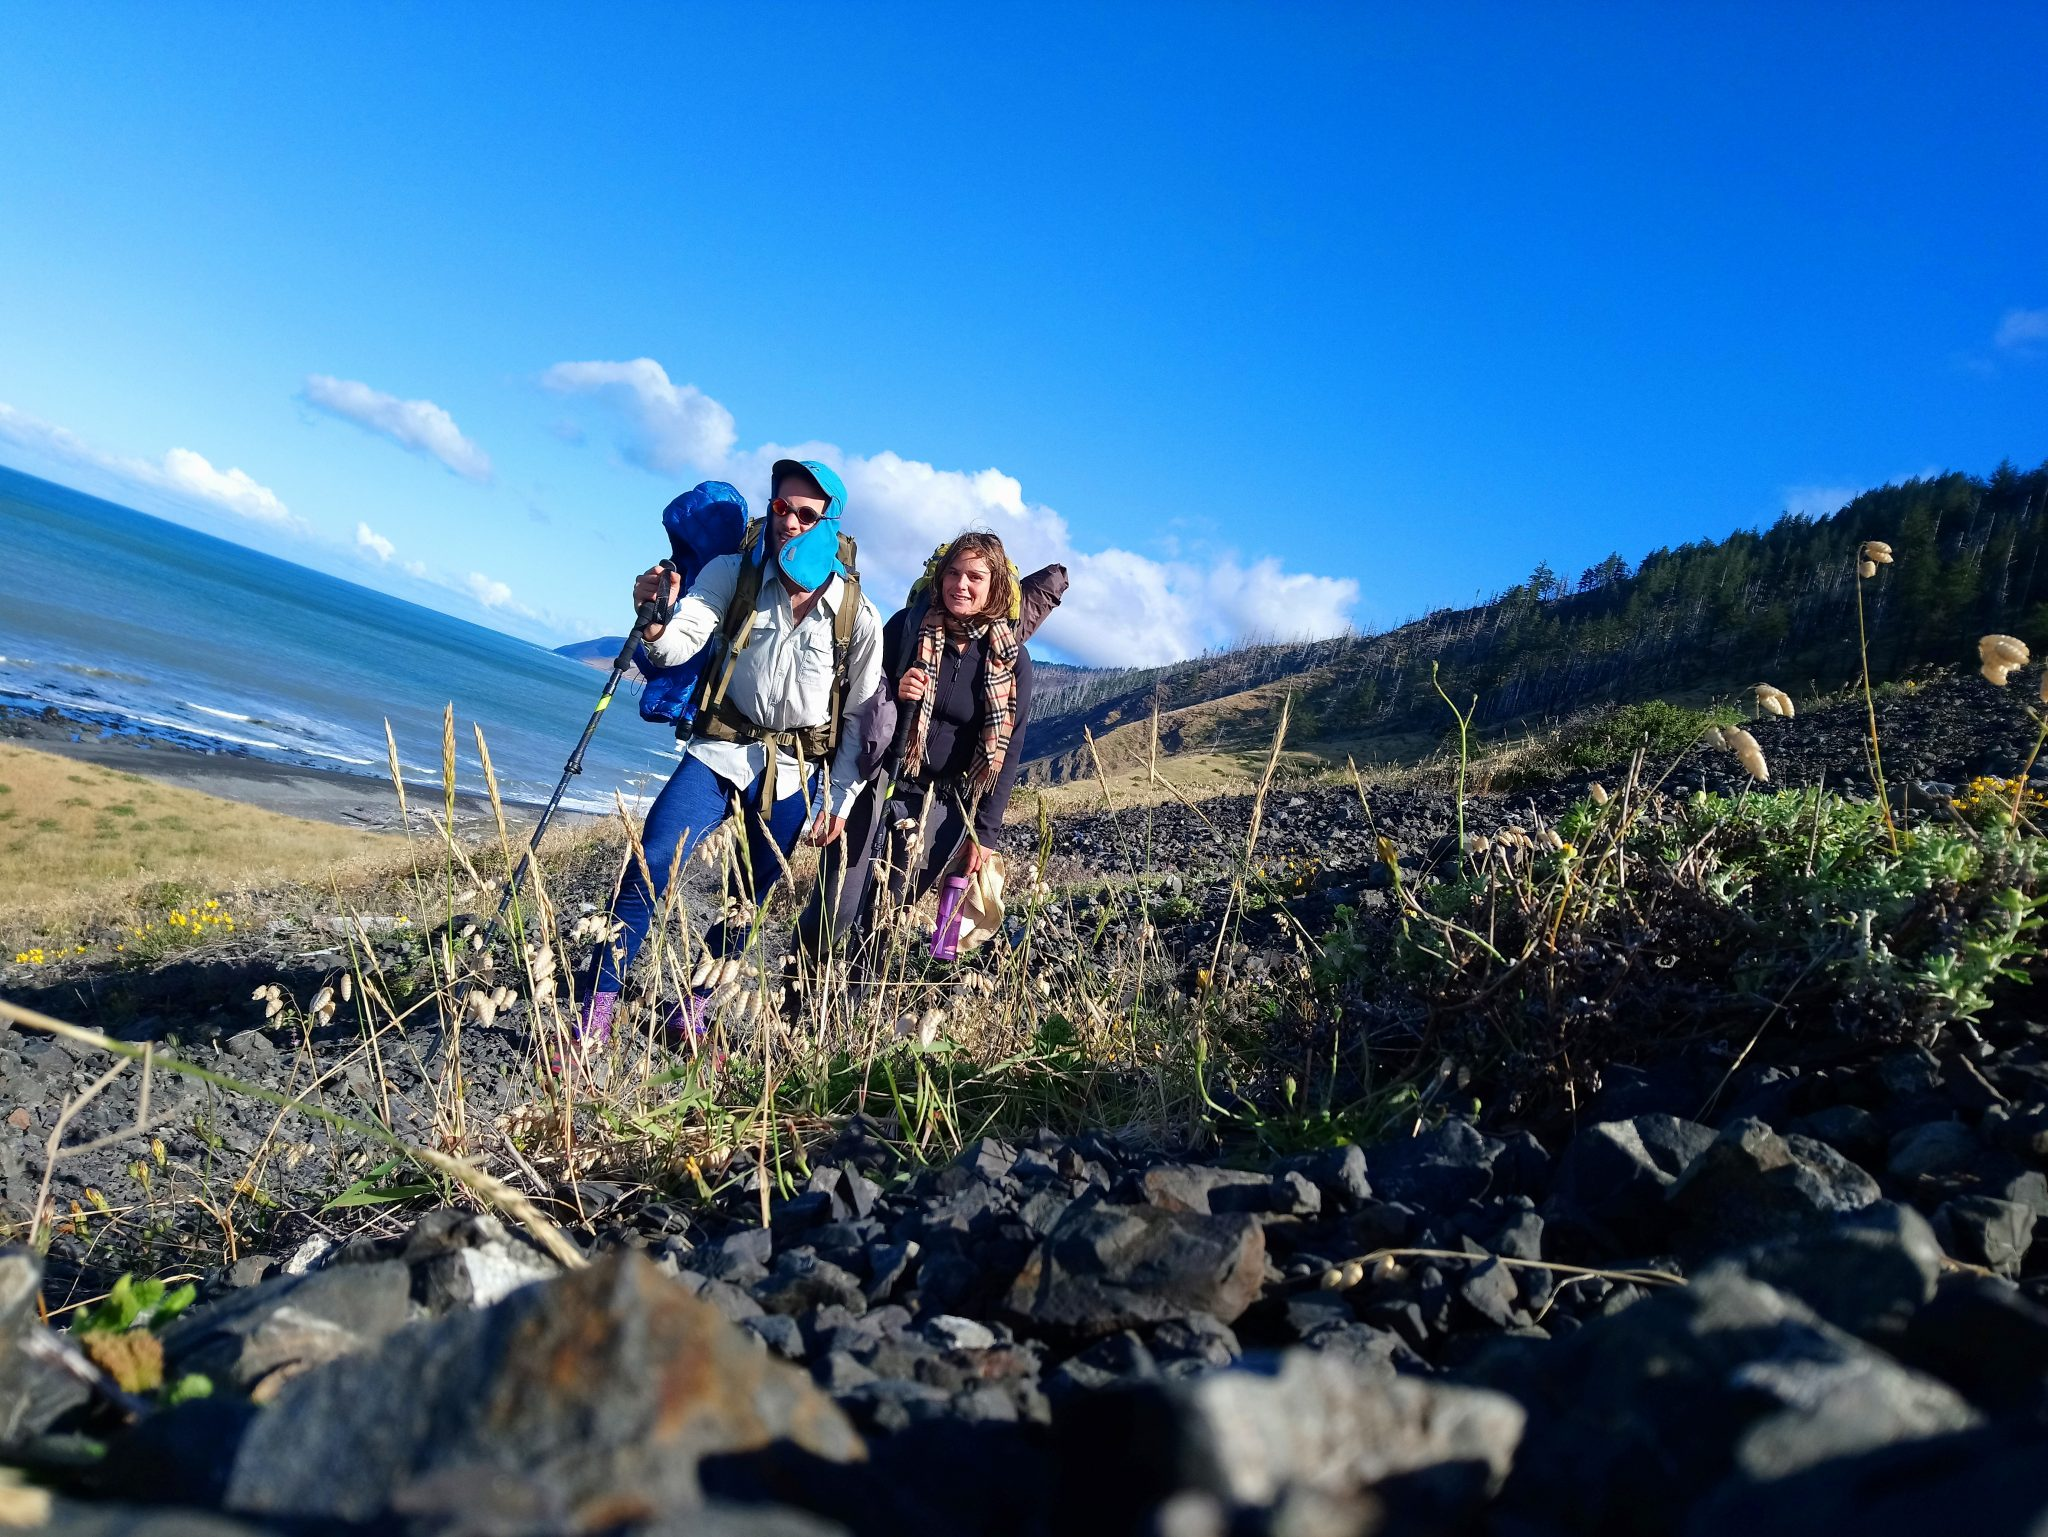 Revisiting the Lost Coast Trail